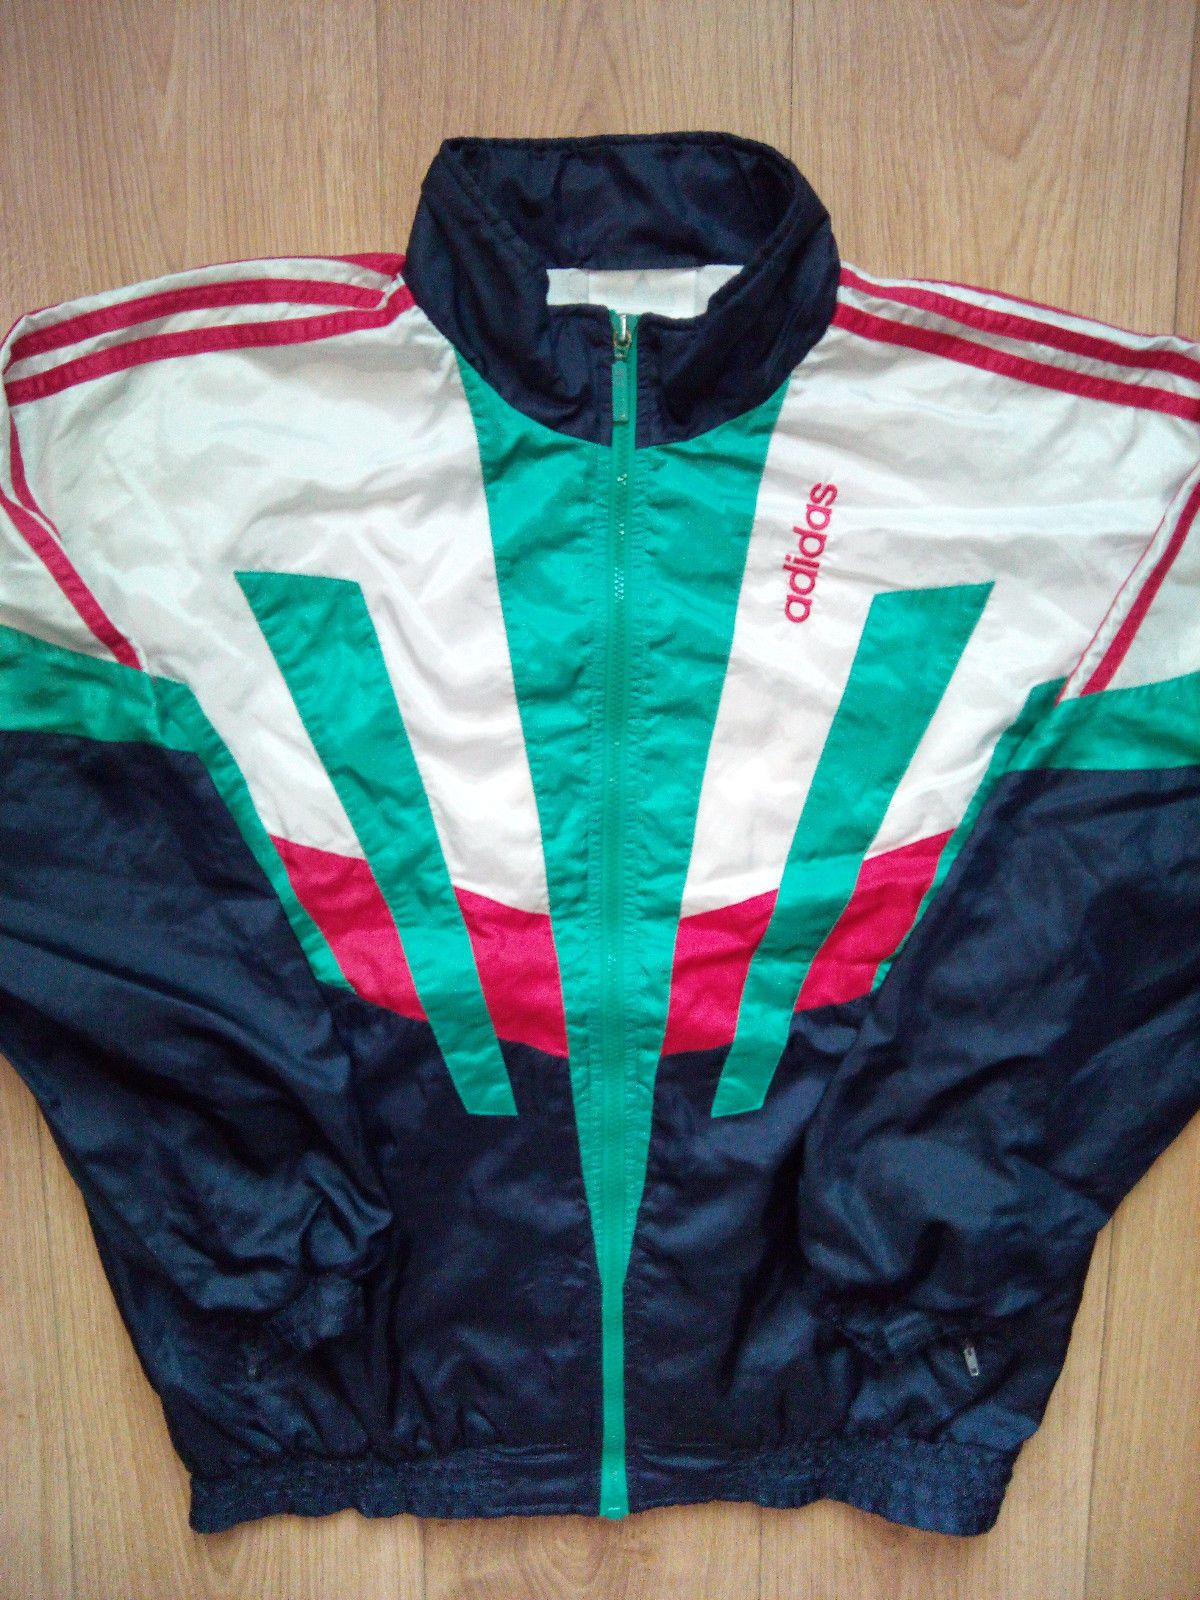 low priced ac347 373e3 Adidas Originals 90 s Vintage Mens Nylon Tracksuit Top jacket in Clothing,  Shoes   Accessories, Men s Clothing, Athletic Apparel   eBay